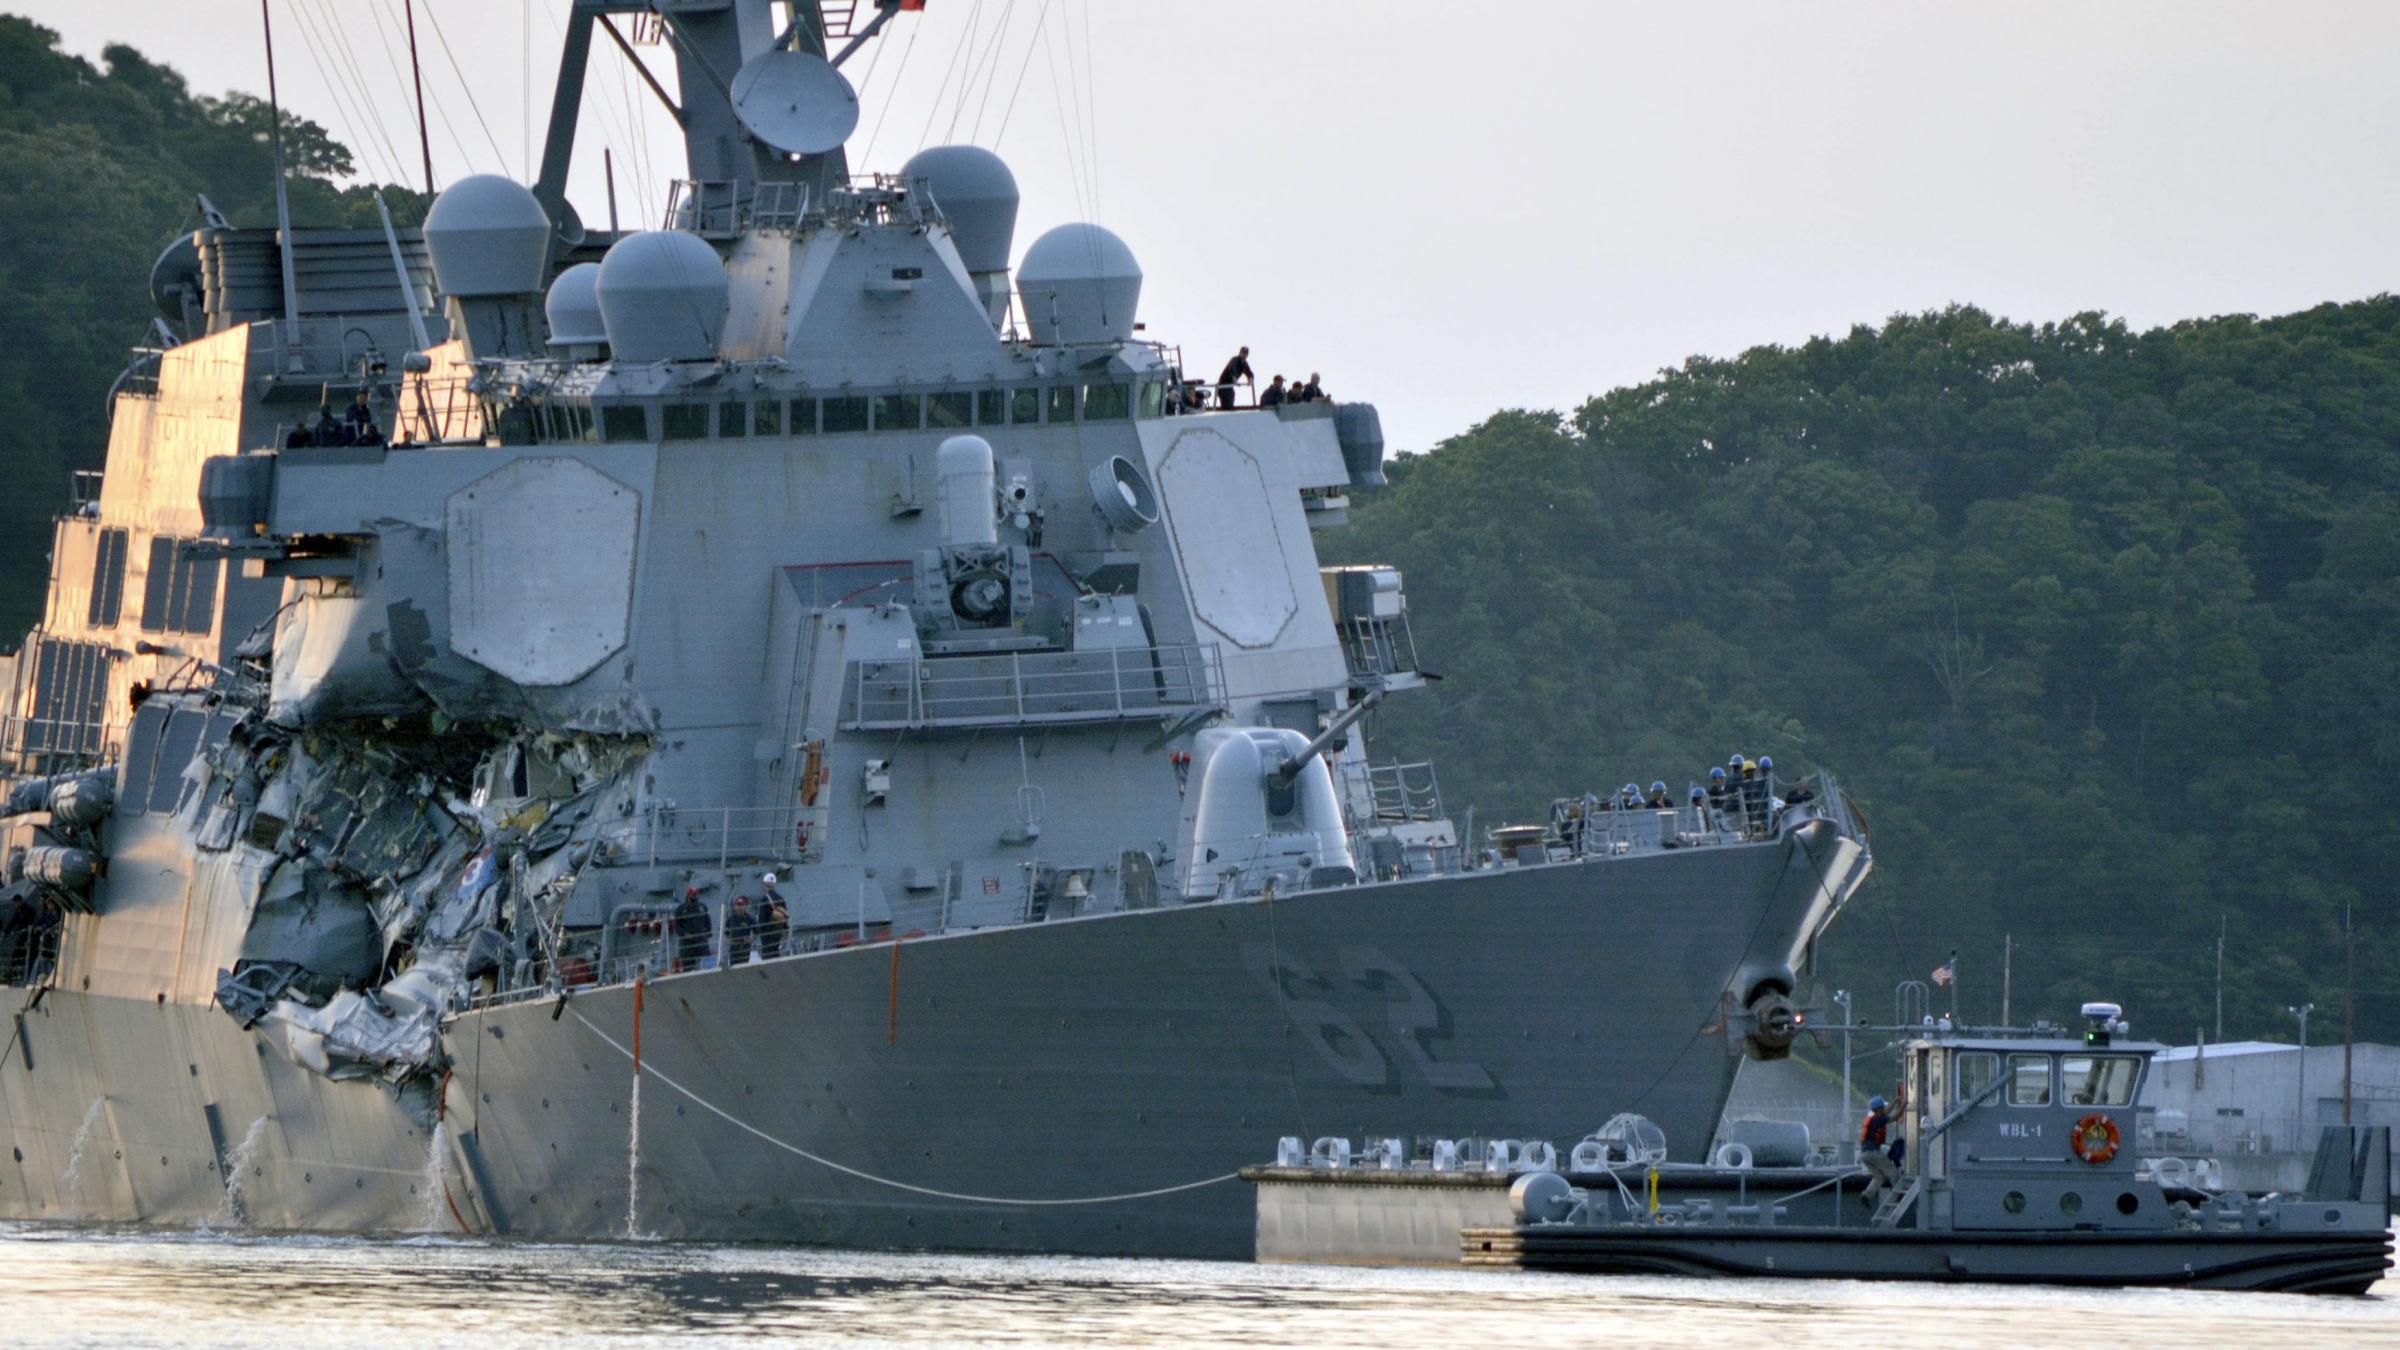 US Navy identifies all 7 sailors killed in freight-destroyer collision